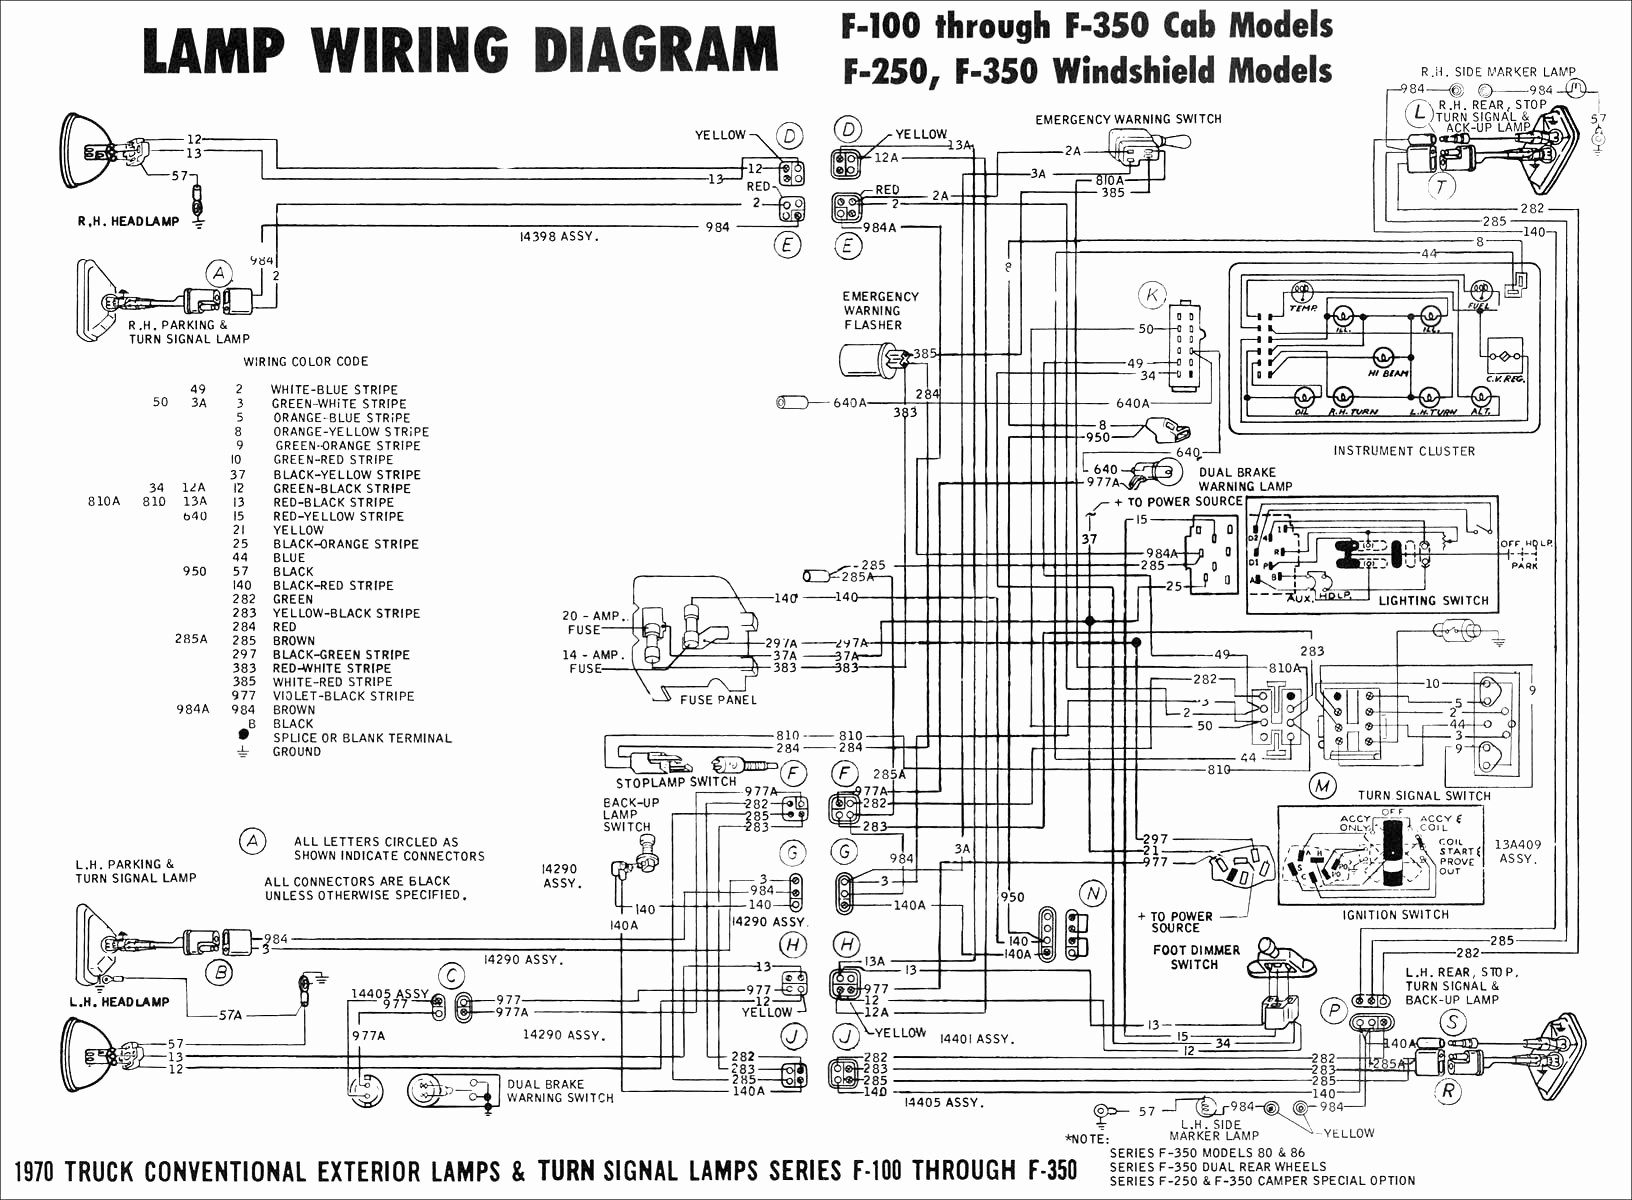 true freezer t 72f wiring diagram sample true t 49f wiring diagram free true twt 27f wiring diagram #4